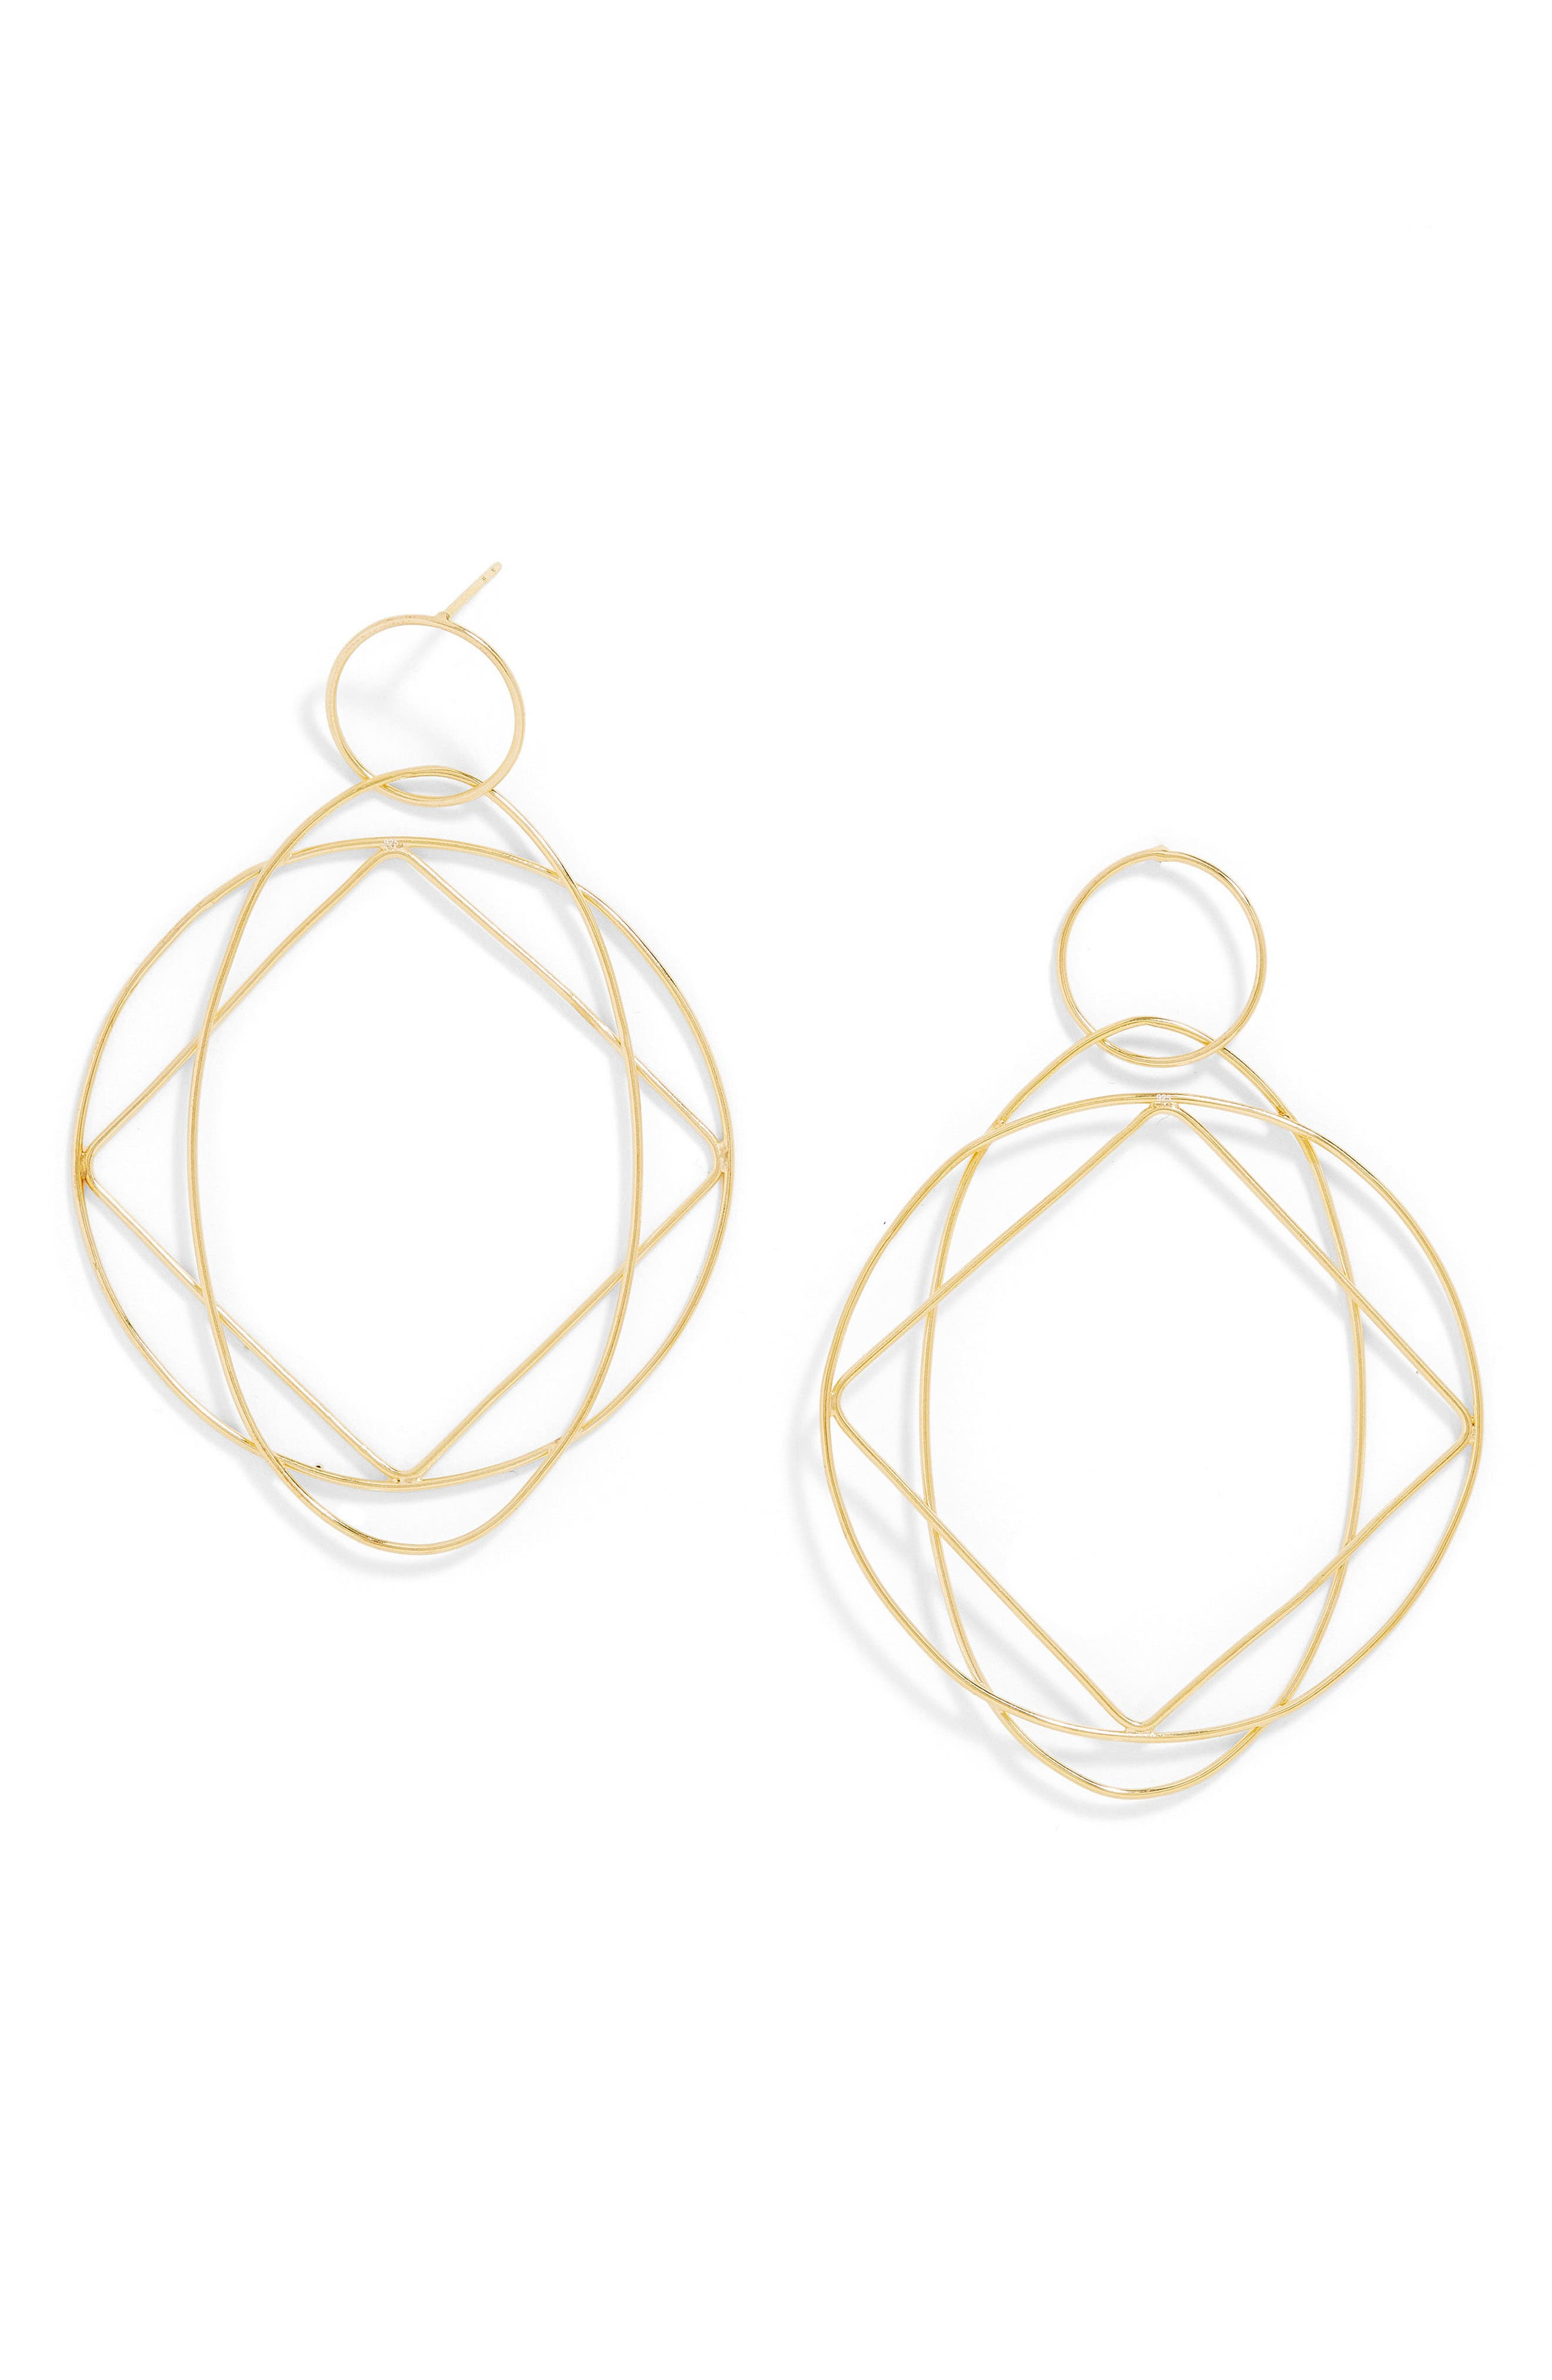 Quad Everyday Spinning Hoop Earrings,                         Main,                         color, Gold